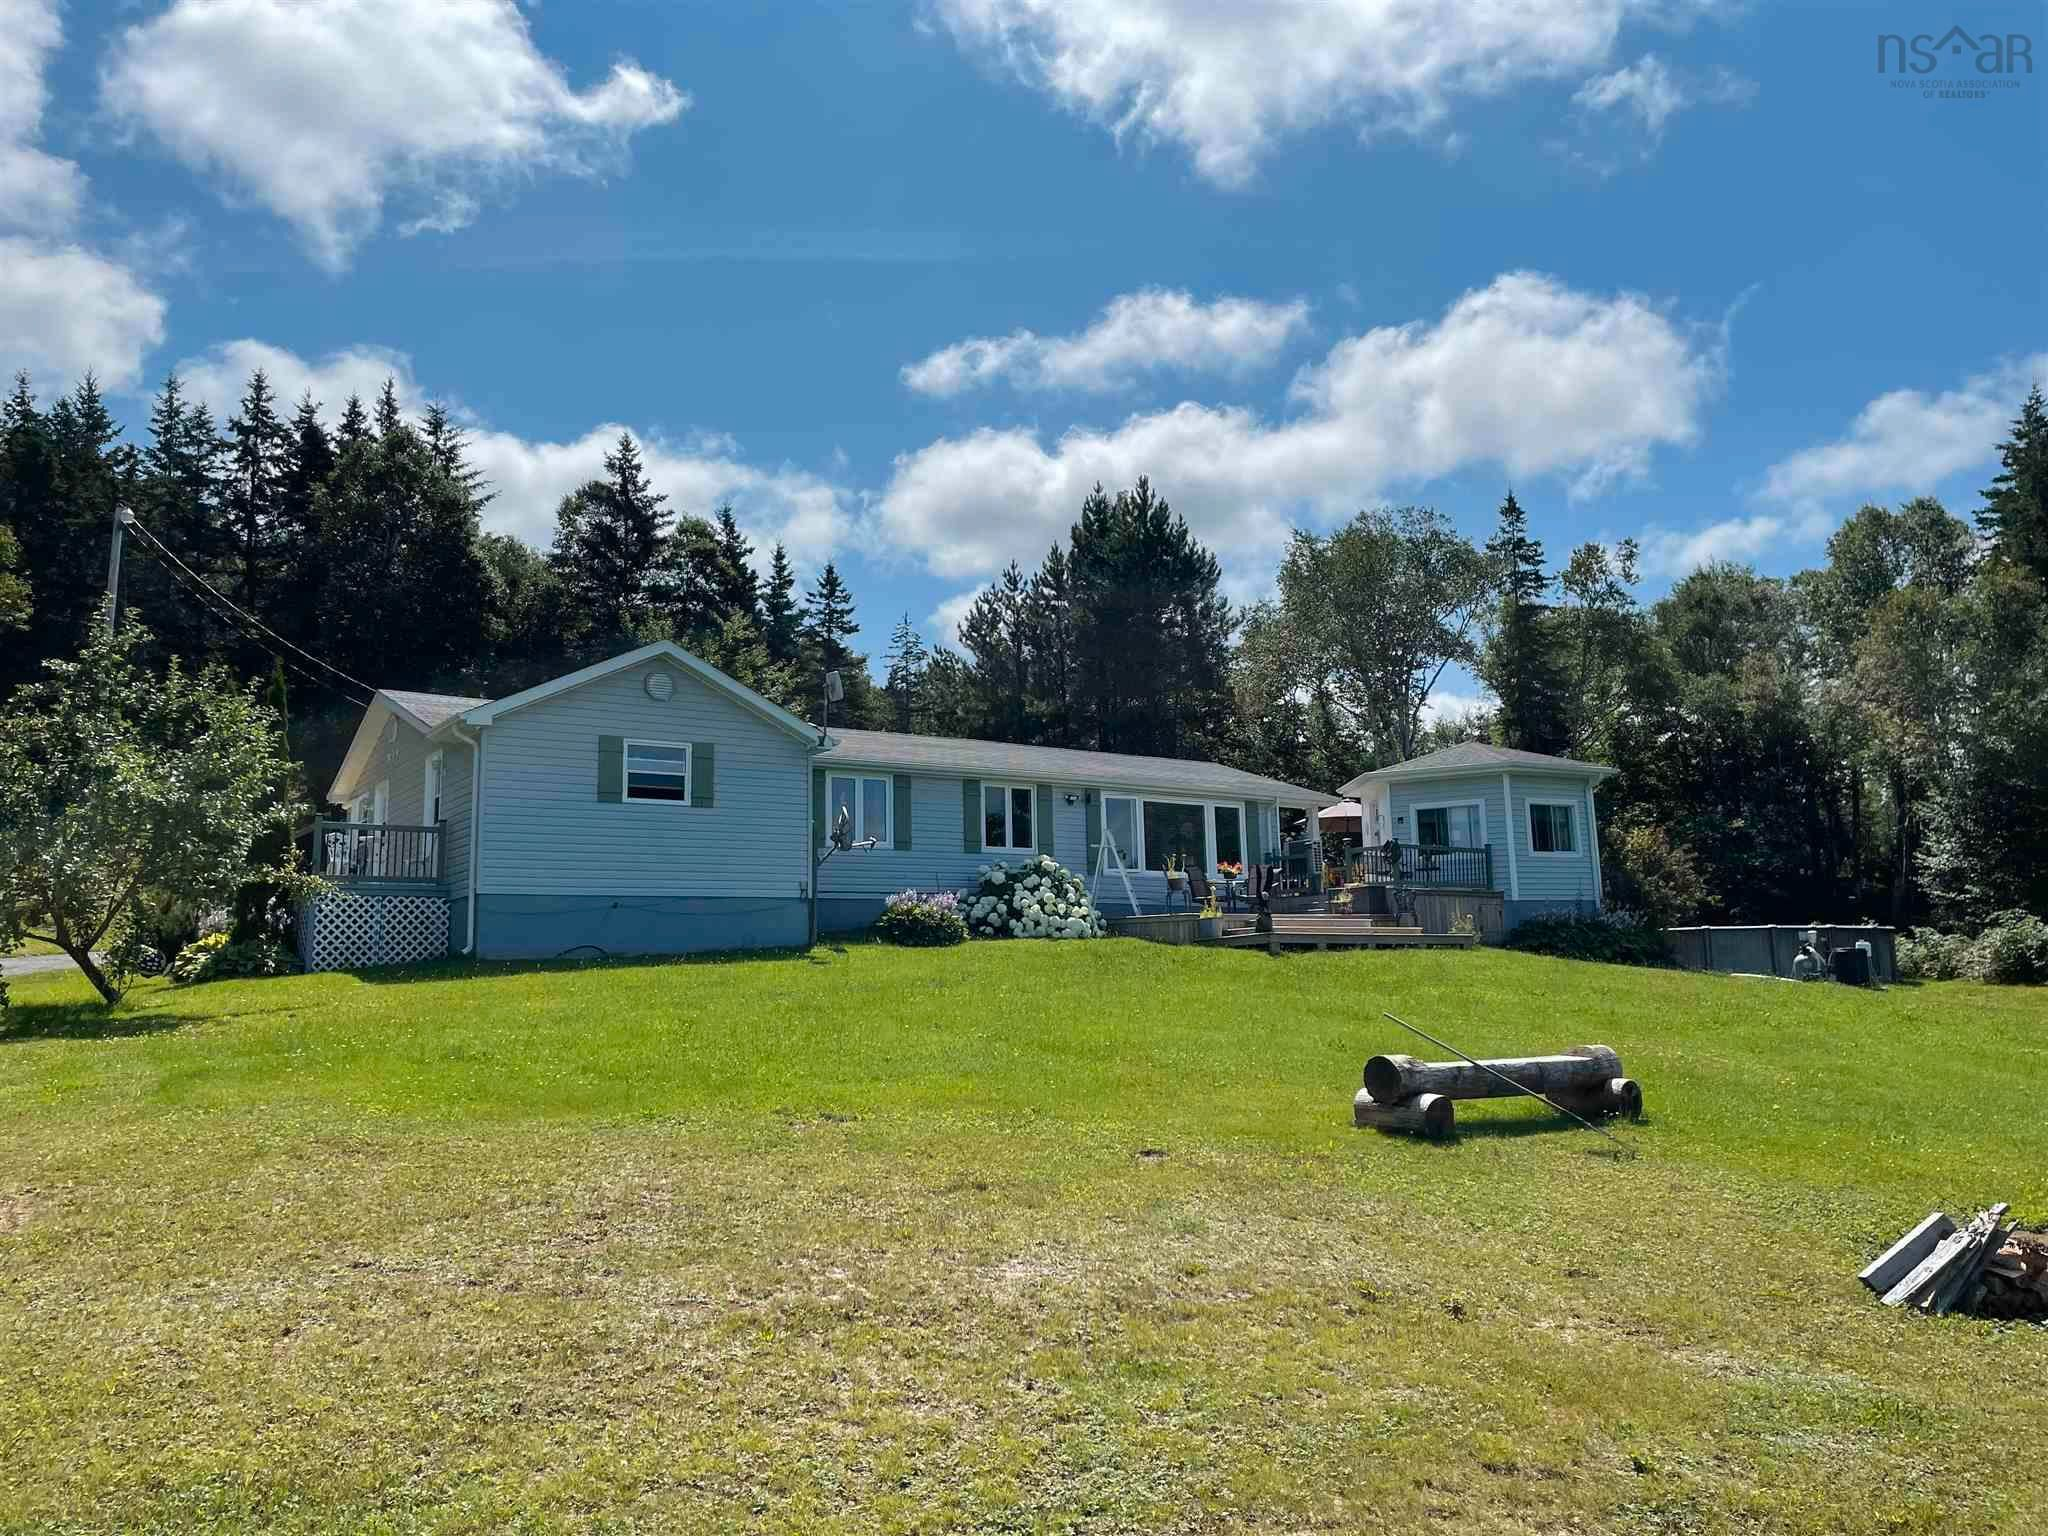 Photo 29: Photos: 3836 Highway 105 in South Haven: 209-Victoria County / Baddeck Residential for sale (Cape Breton)  : MLS®# 202120821